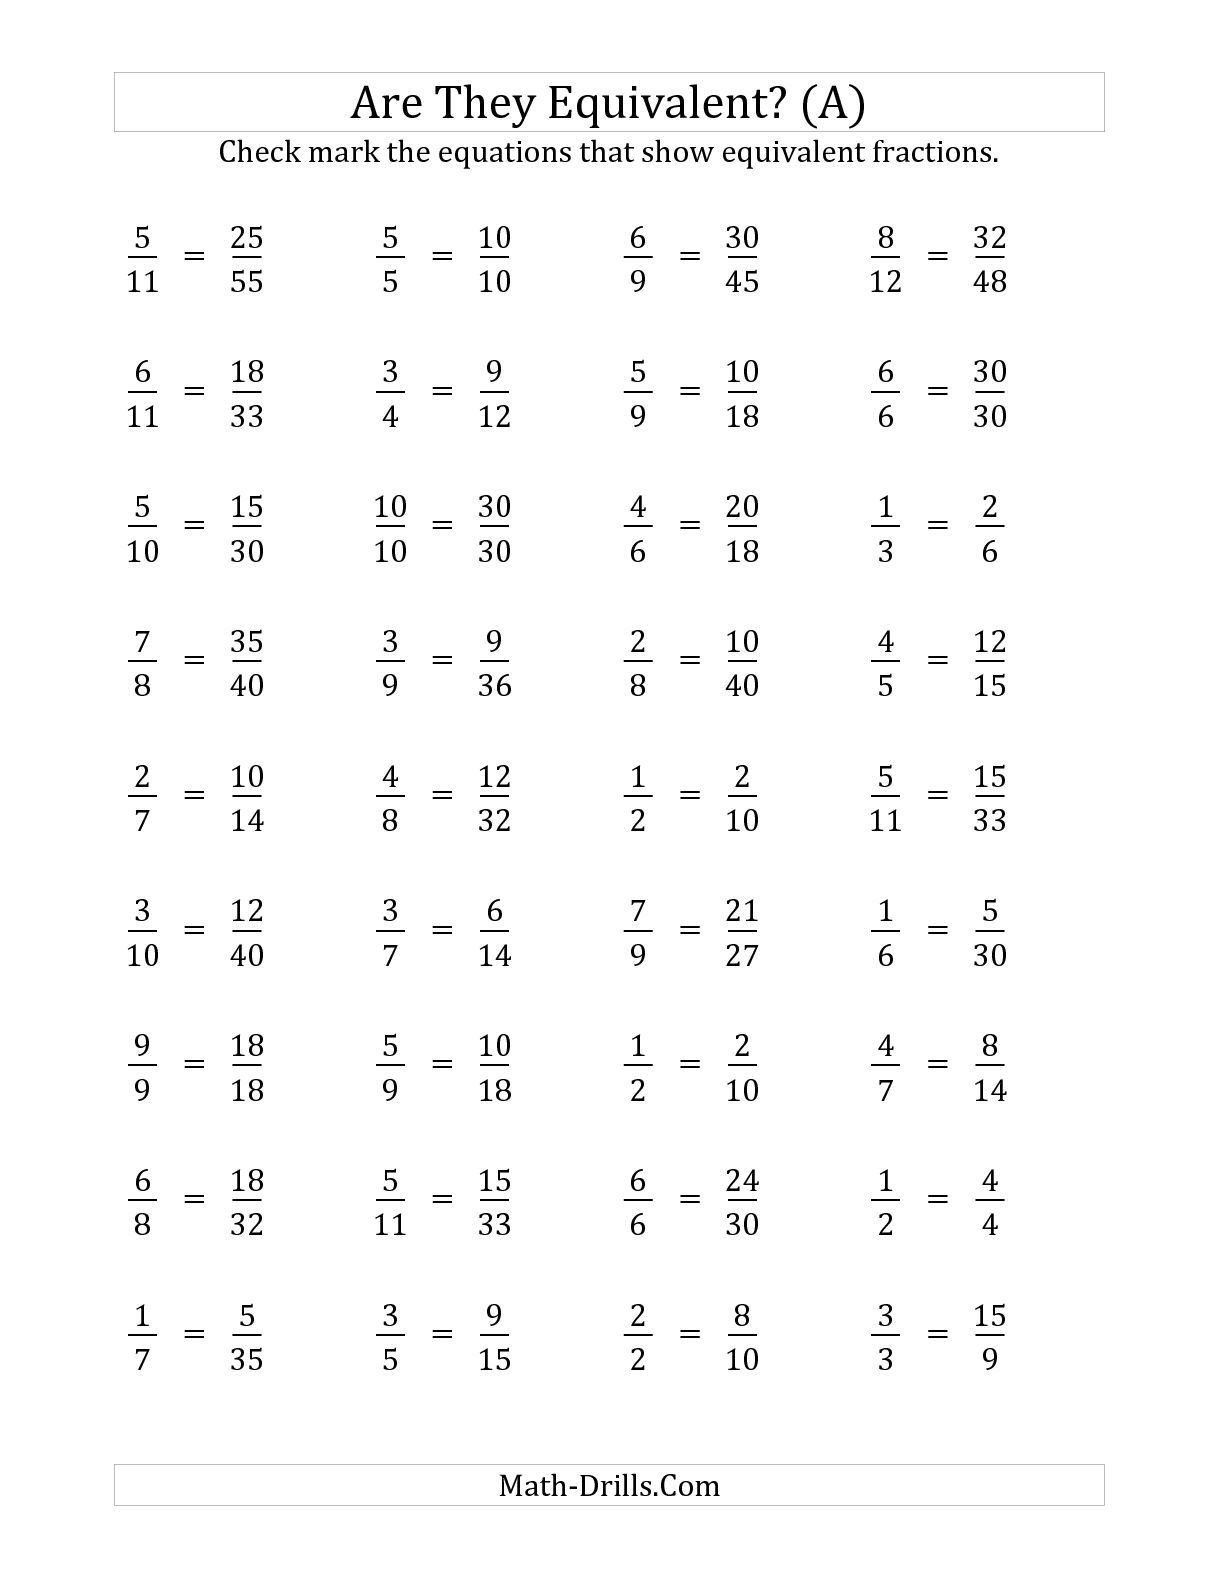 Equivalent Fraction Worksheets 5th Grade the are these Fractions Equivalent Multiplier Range 2 to 5